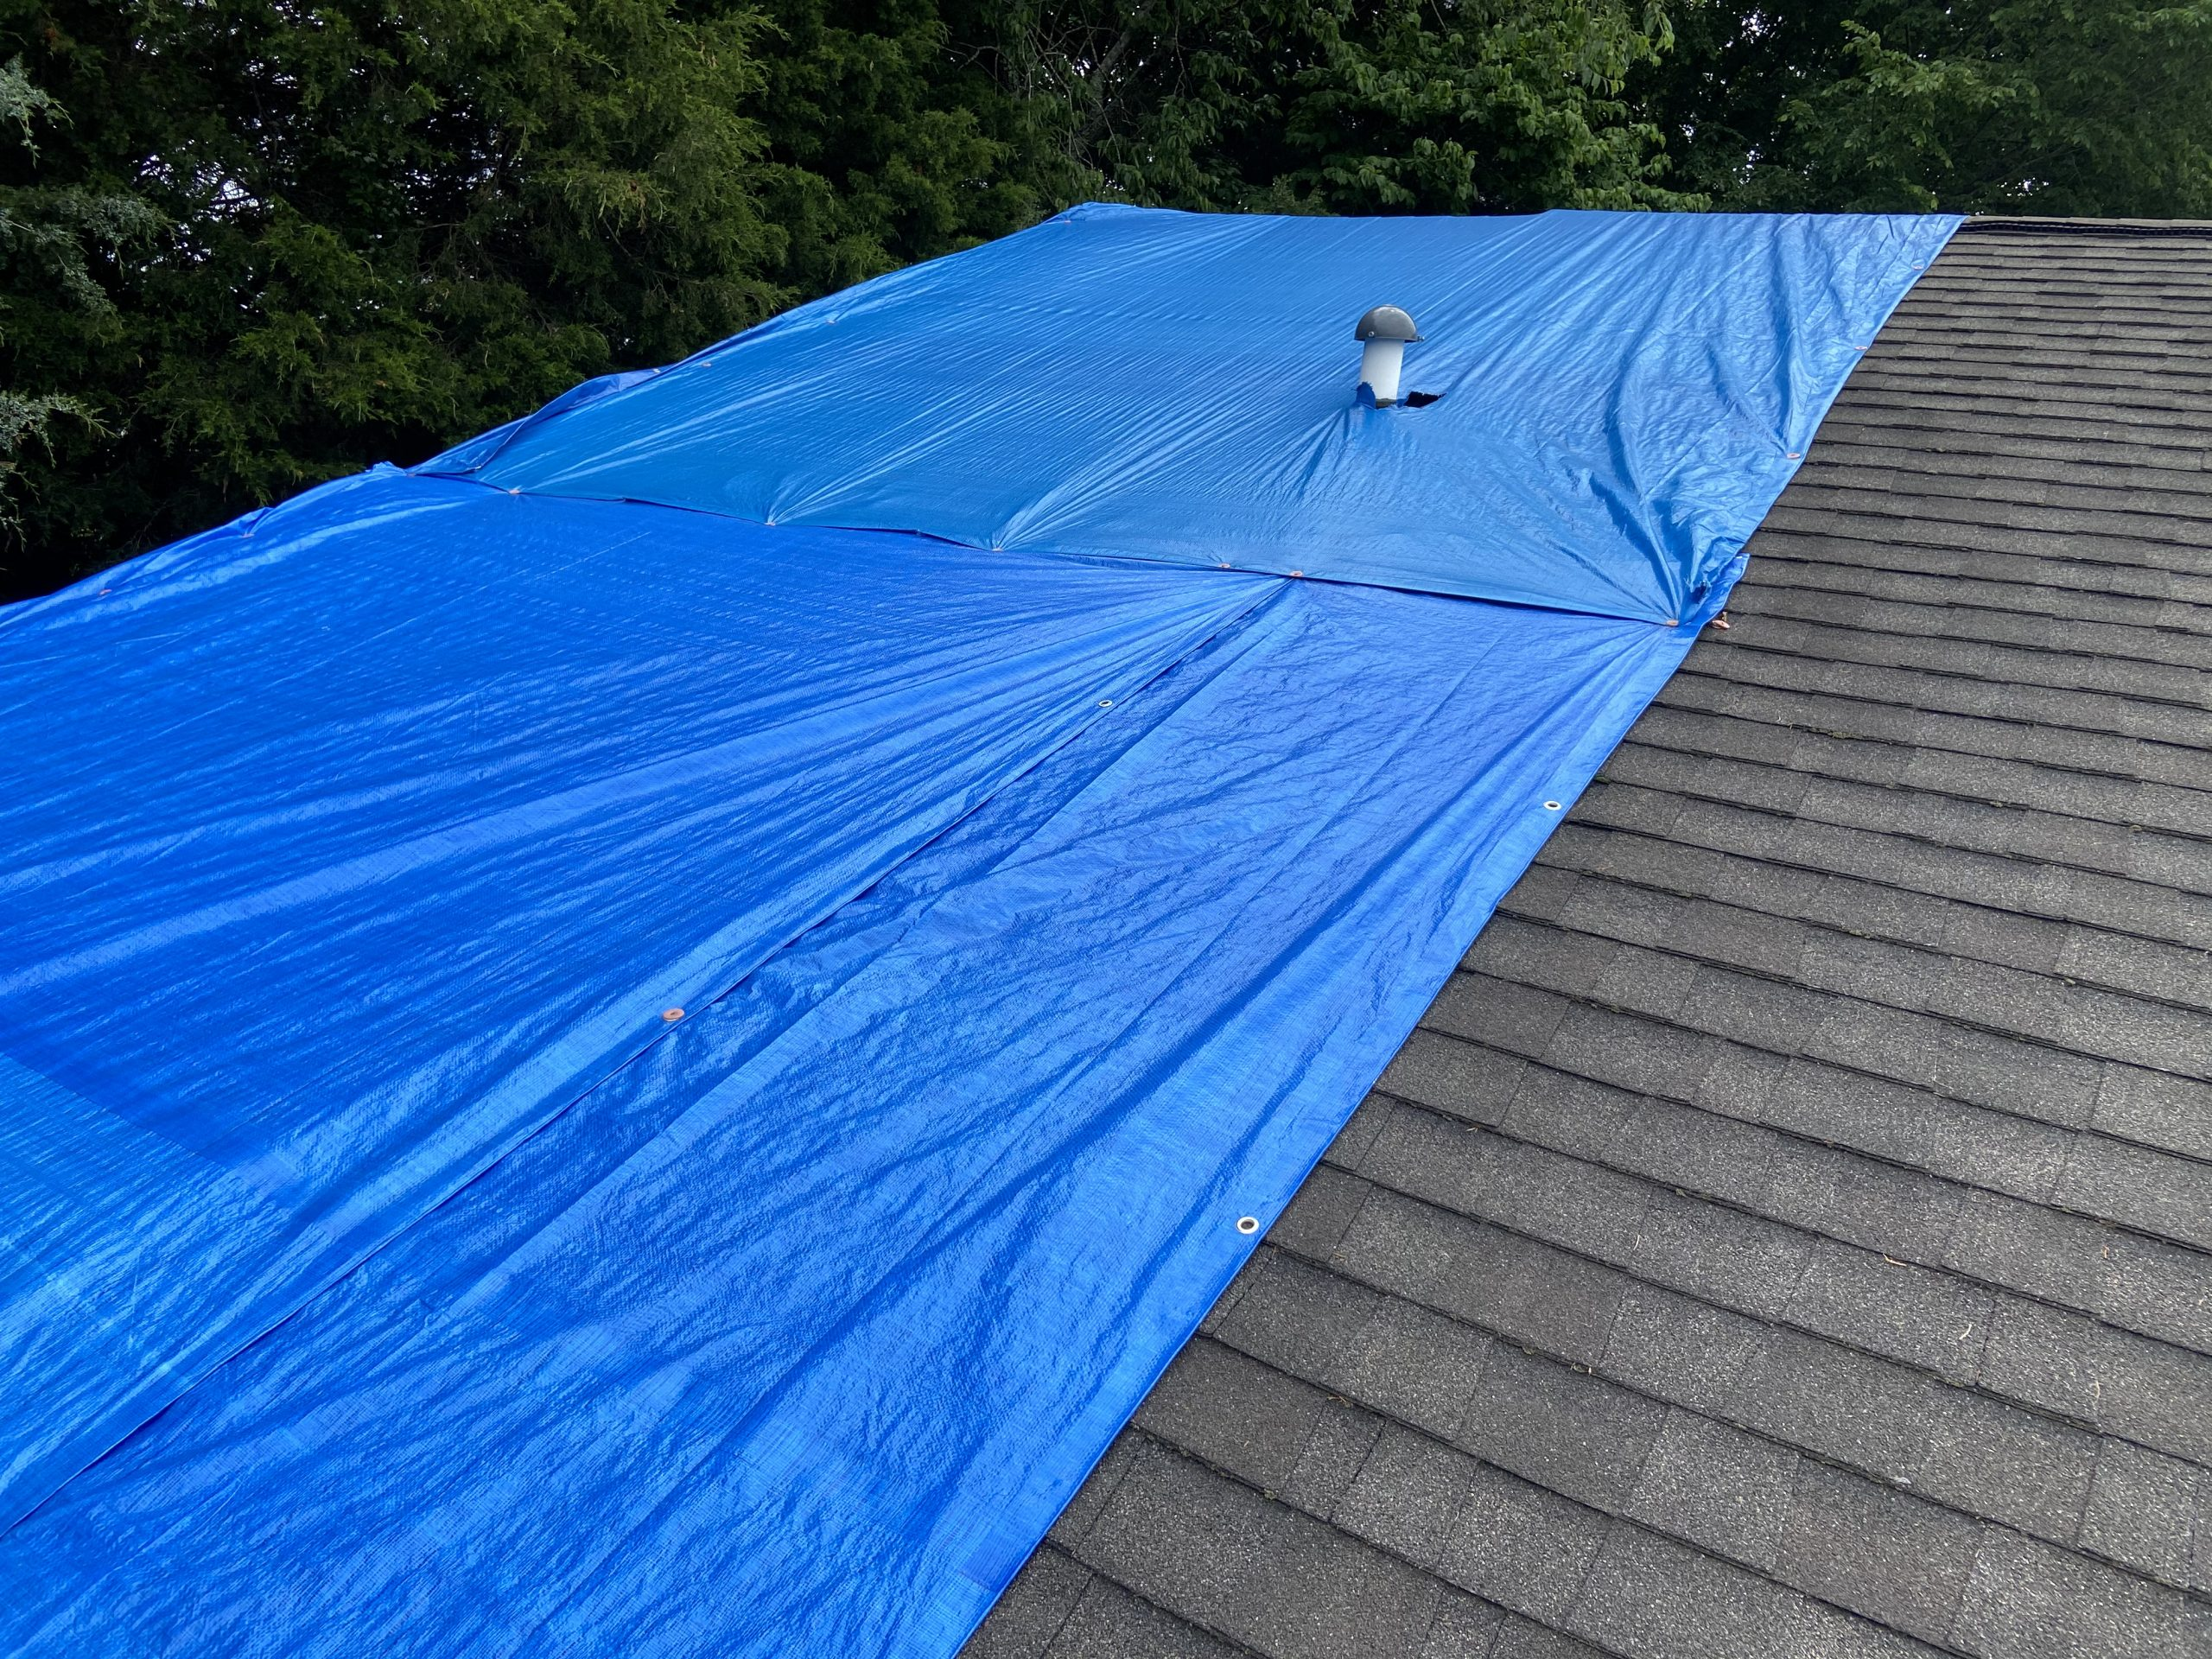 This is an image of a blue tarp on the roof to prevent leaking.